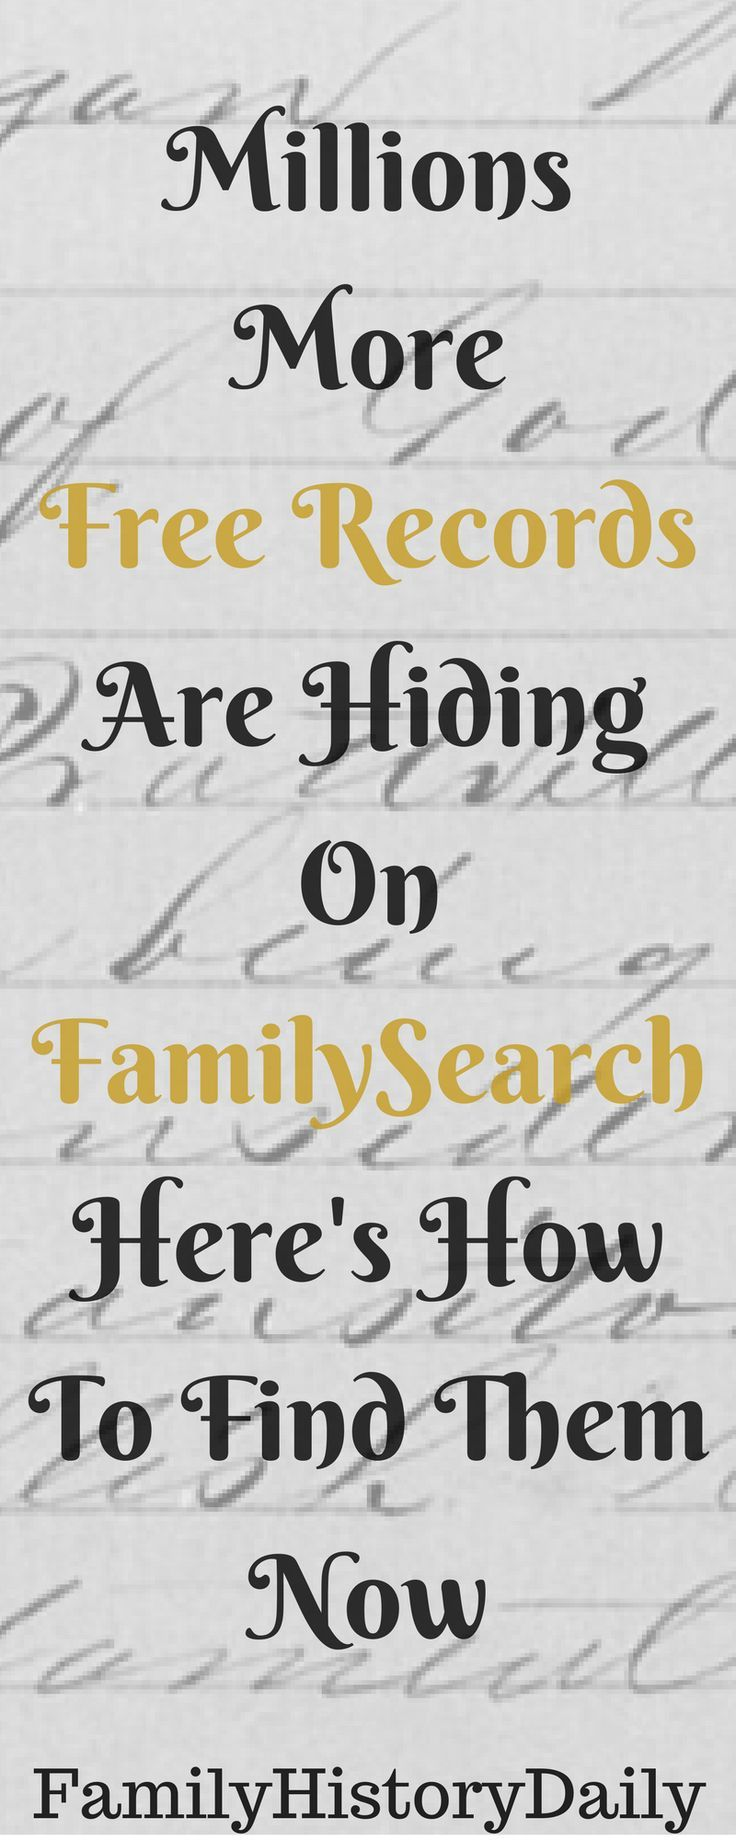 Find hidden genealogy record collections on FamilySearch with this trick and grow your family tree for free!